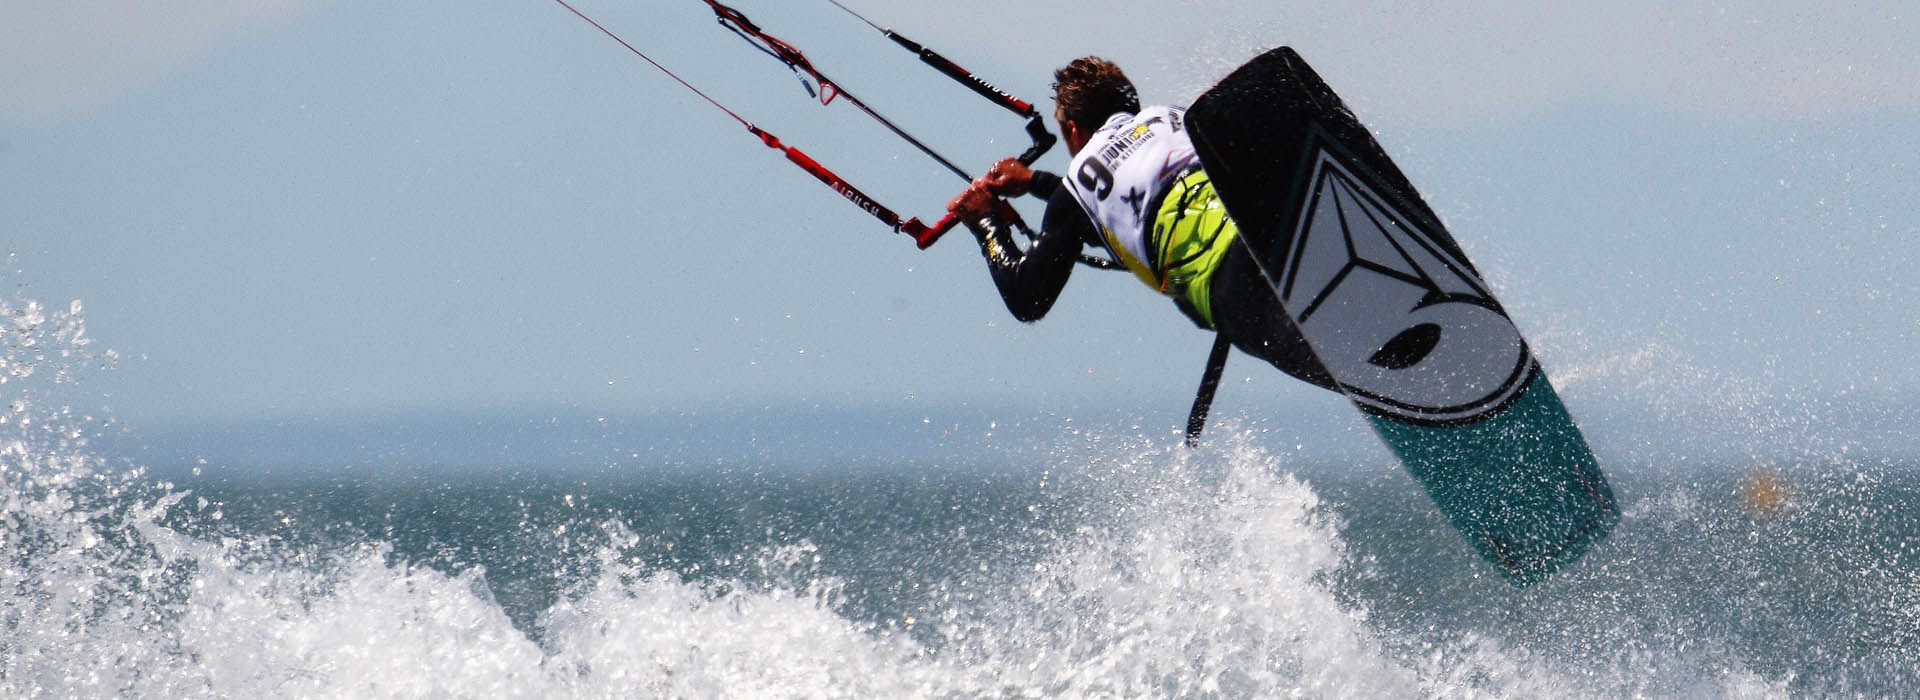 Improve your Kitesurfing skills in the South of France